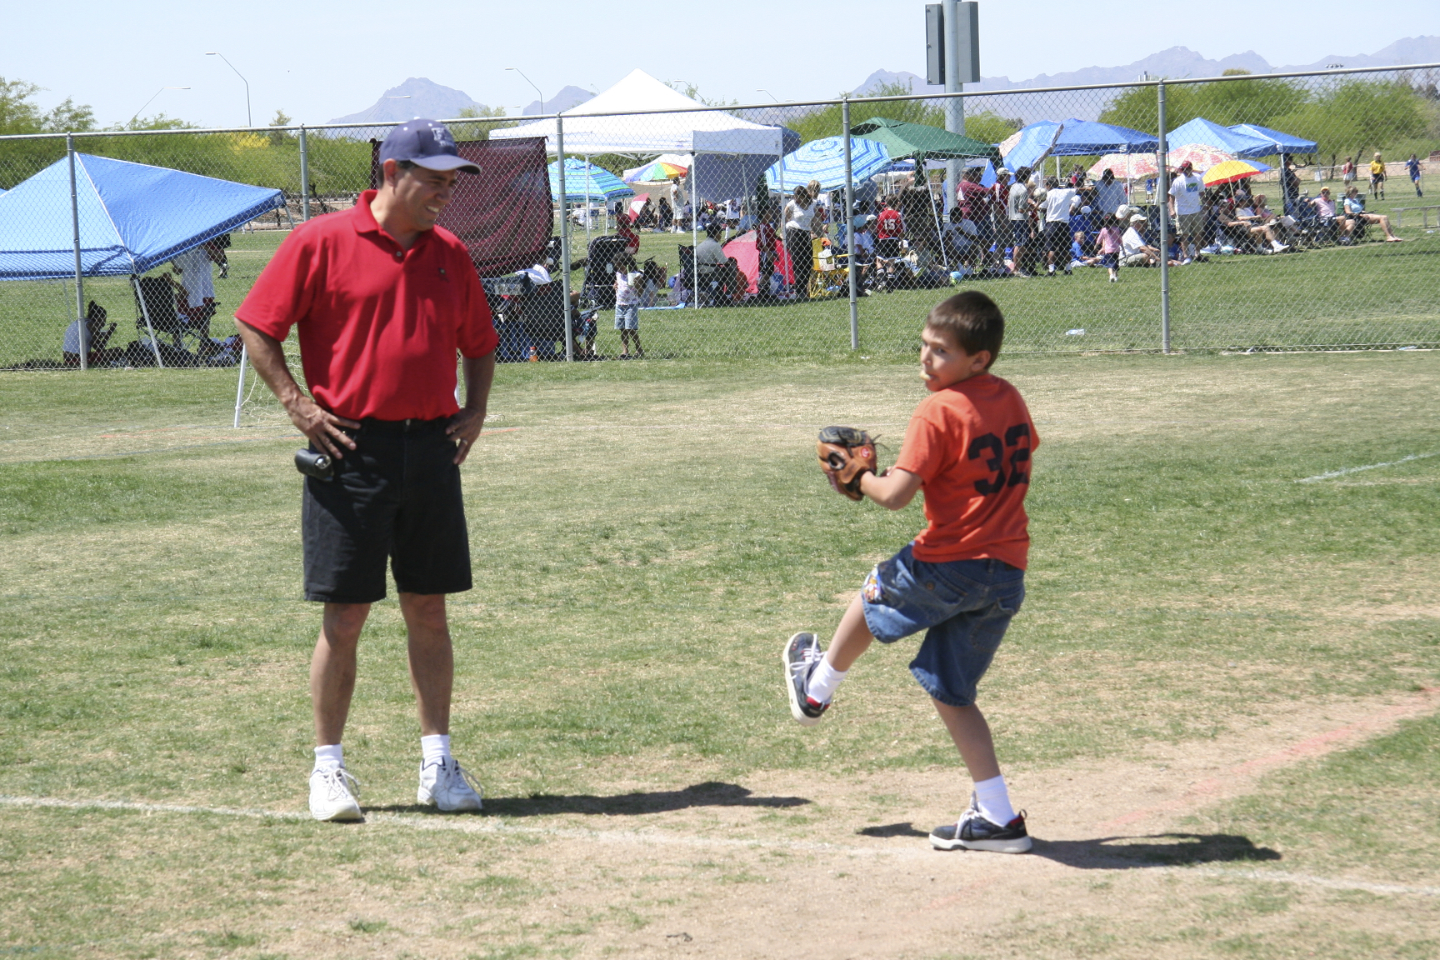 2007. The ever present attempt to help Kyler develop into a pitcher and play baseball.